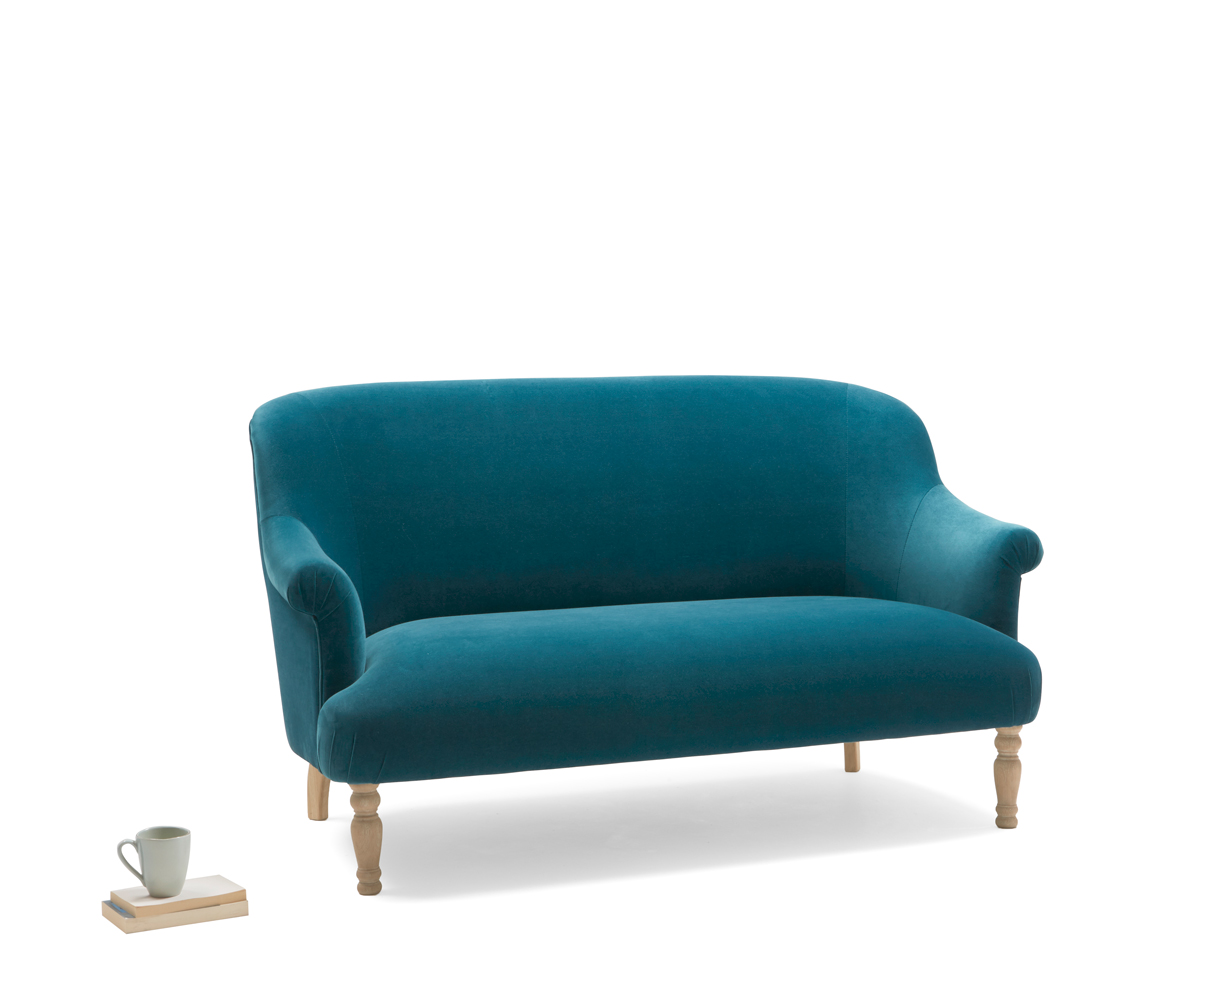 sweetie small retroe style occassional sofa